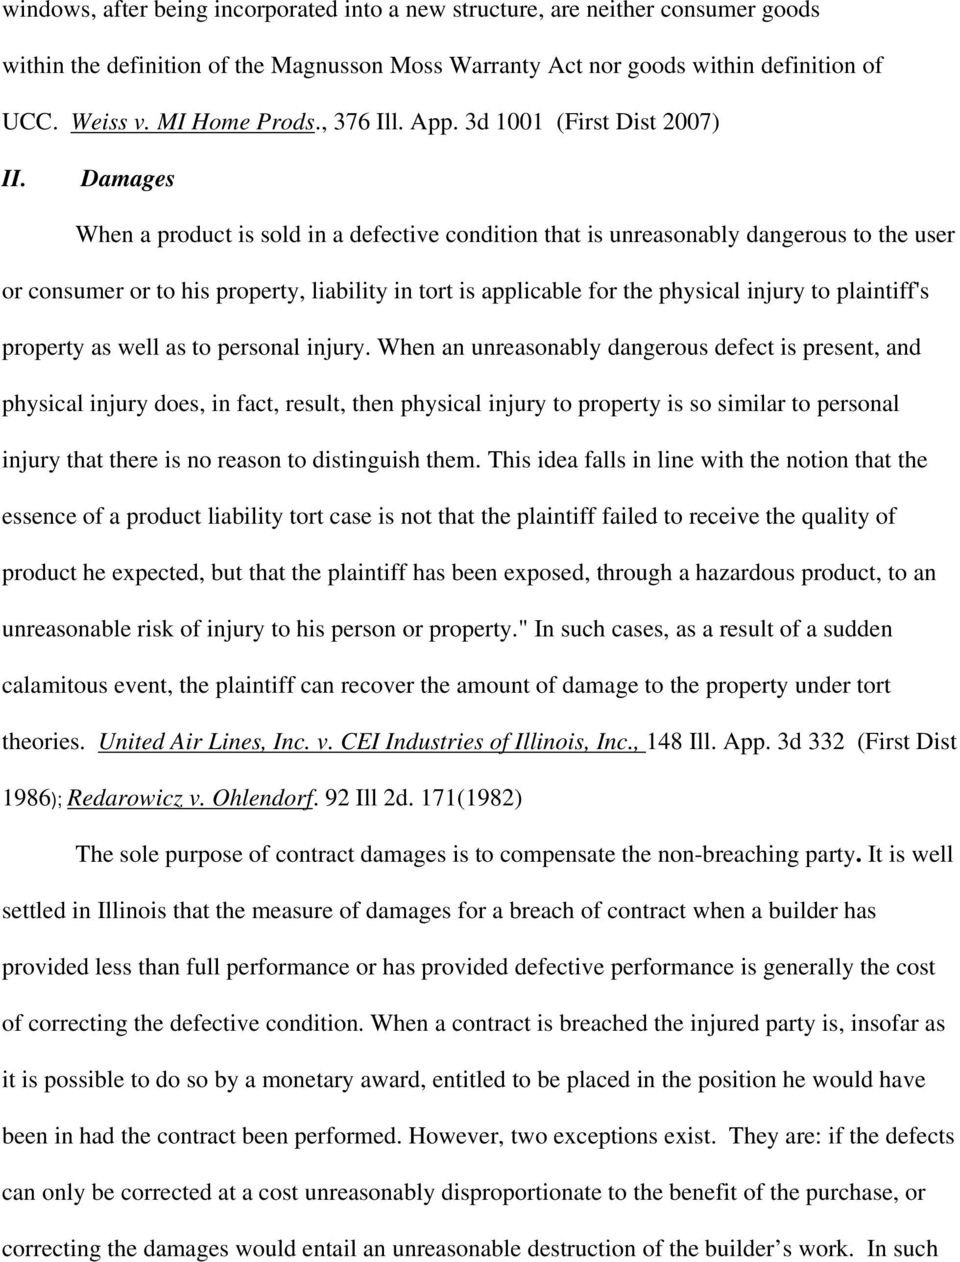 Damages When a product is sold in a defective condition that is unreasonably dangerous to the user or consumer or to his property, liability in tort is applicable for the physical injury to